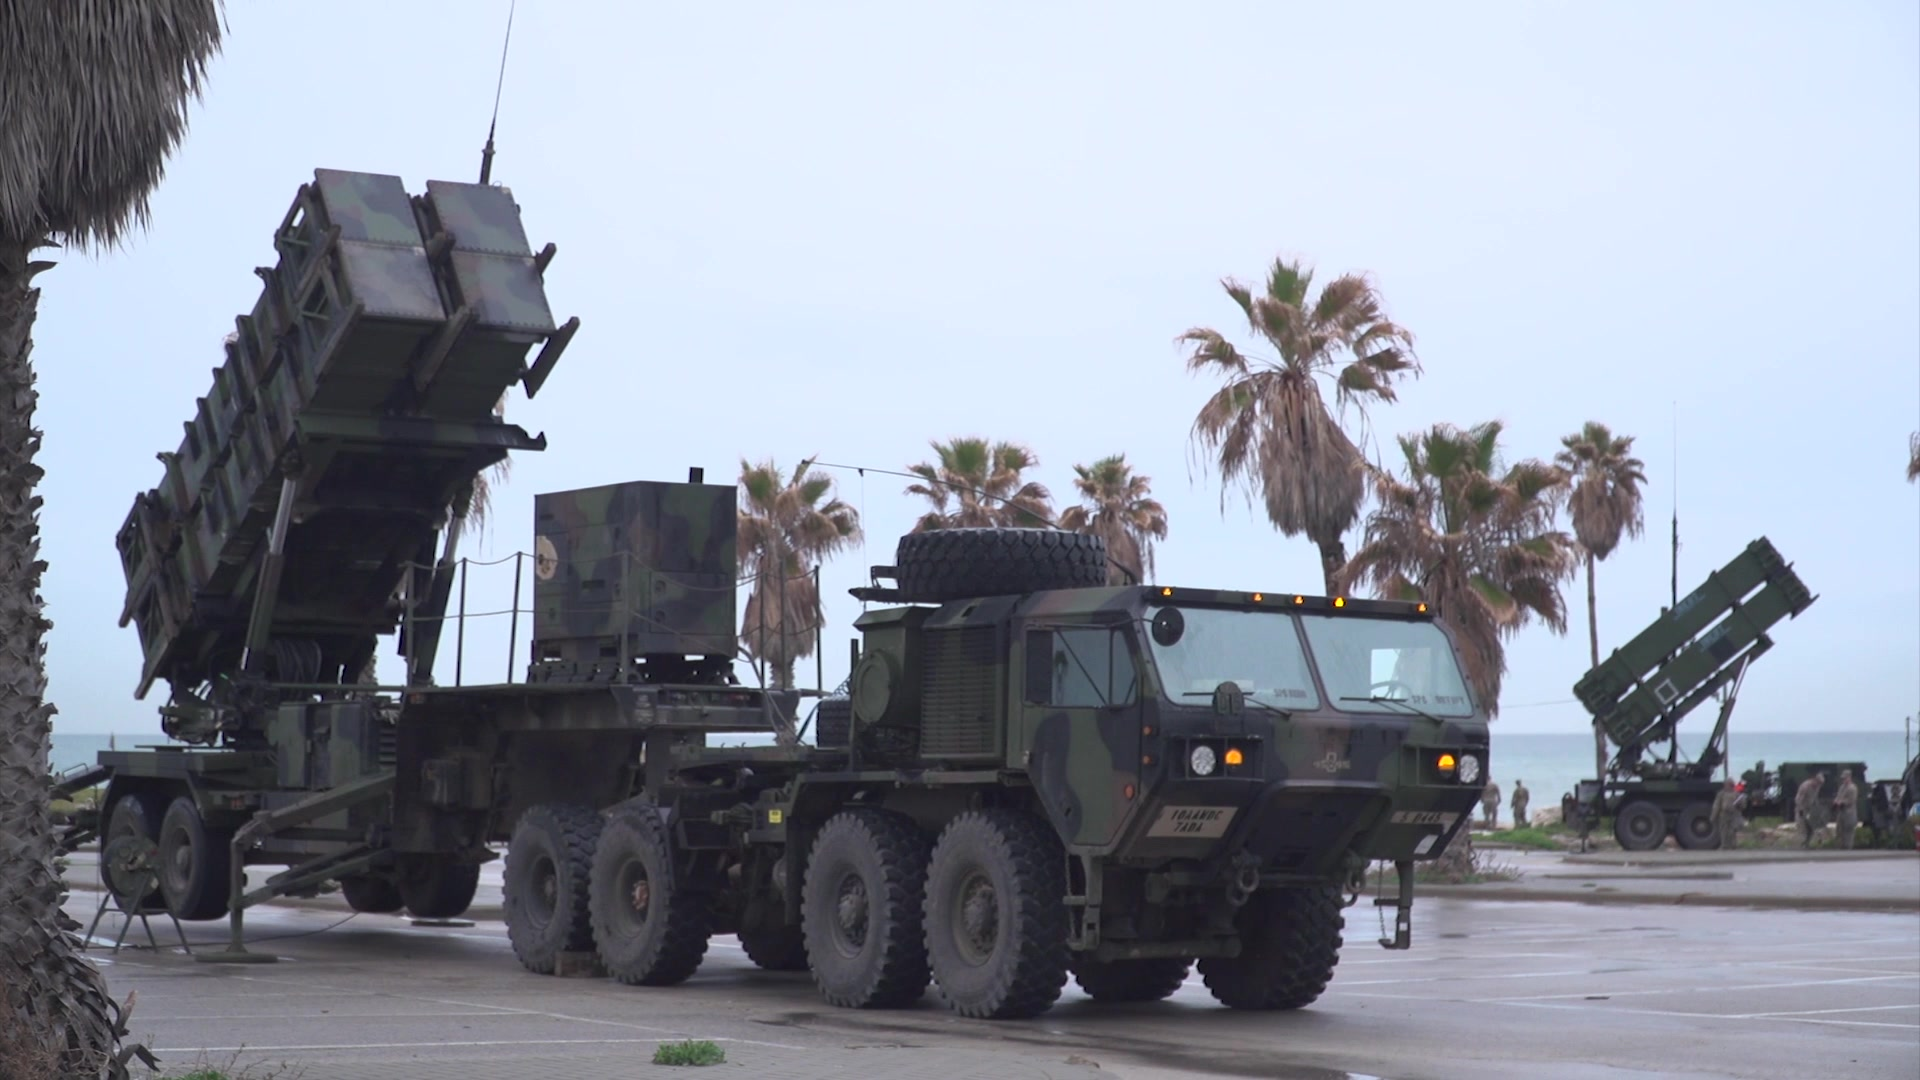 A vehicle transports a missile defense system.